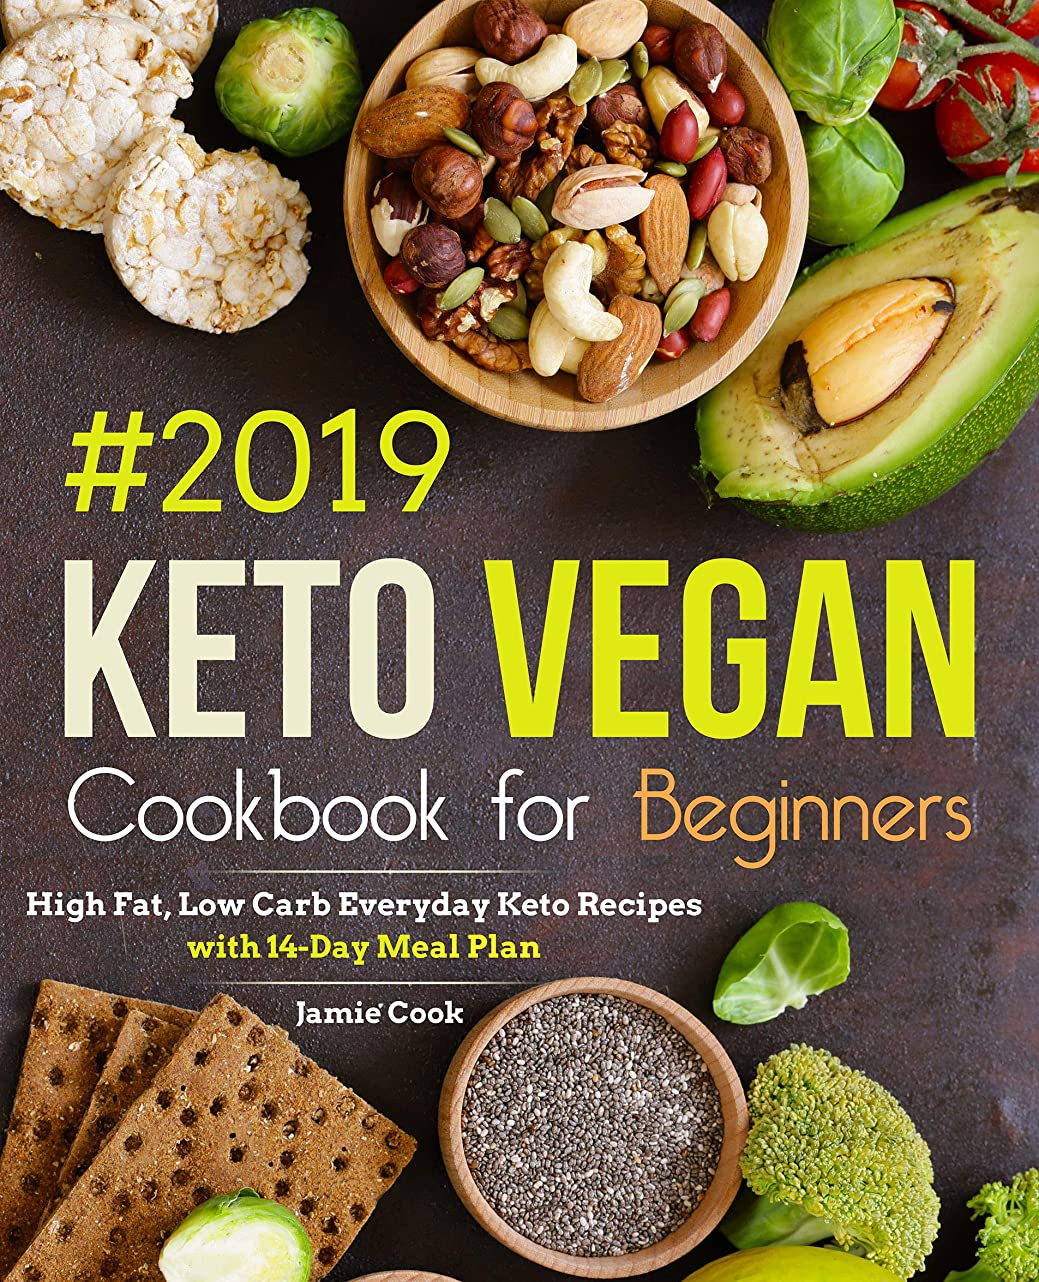 Keto Vegan Cookbook for Beginners #2019: High Fat, Low Carb Everyday Keto Recipes with 14-Day Meal Plan (Keto diet cookbook 1) (English Edition)